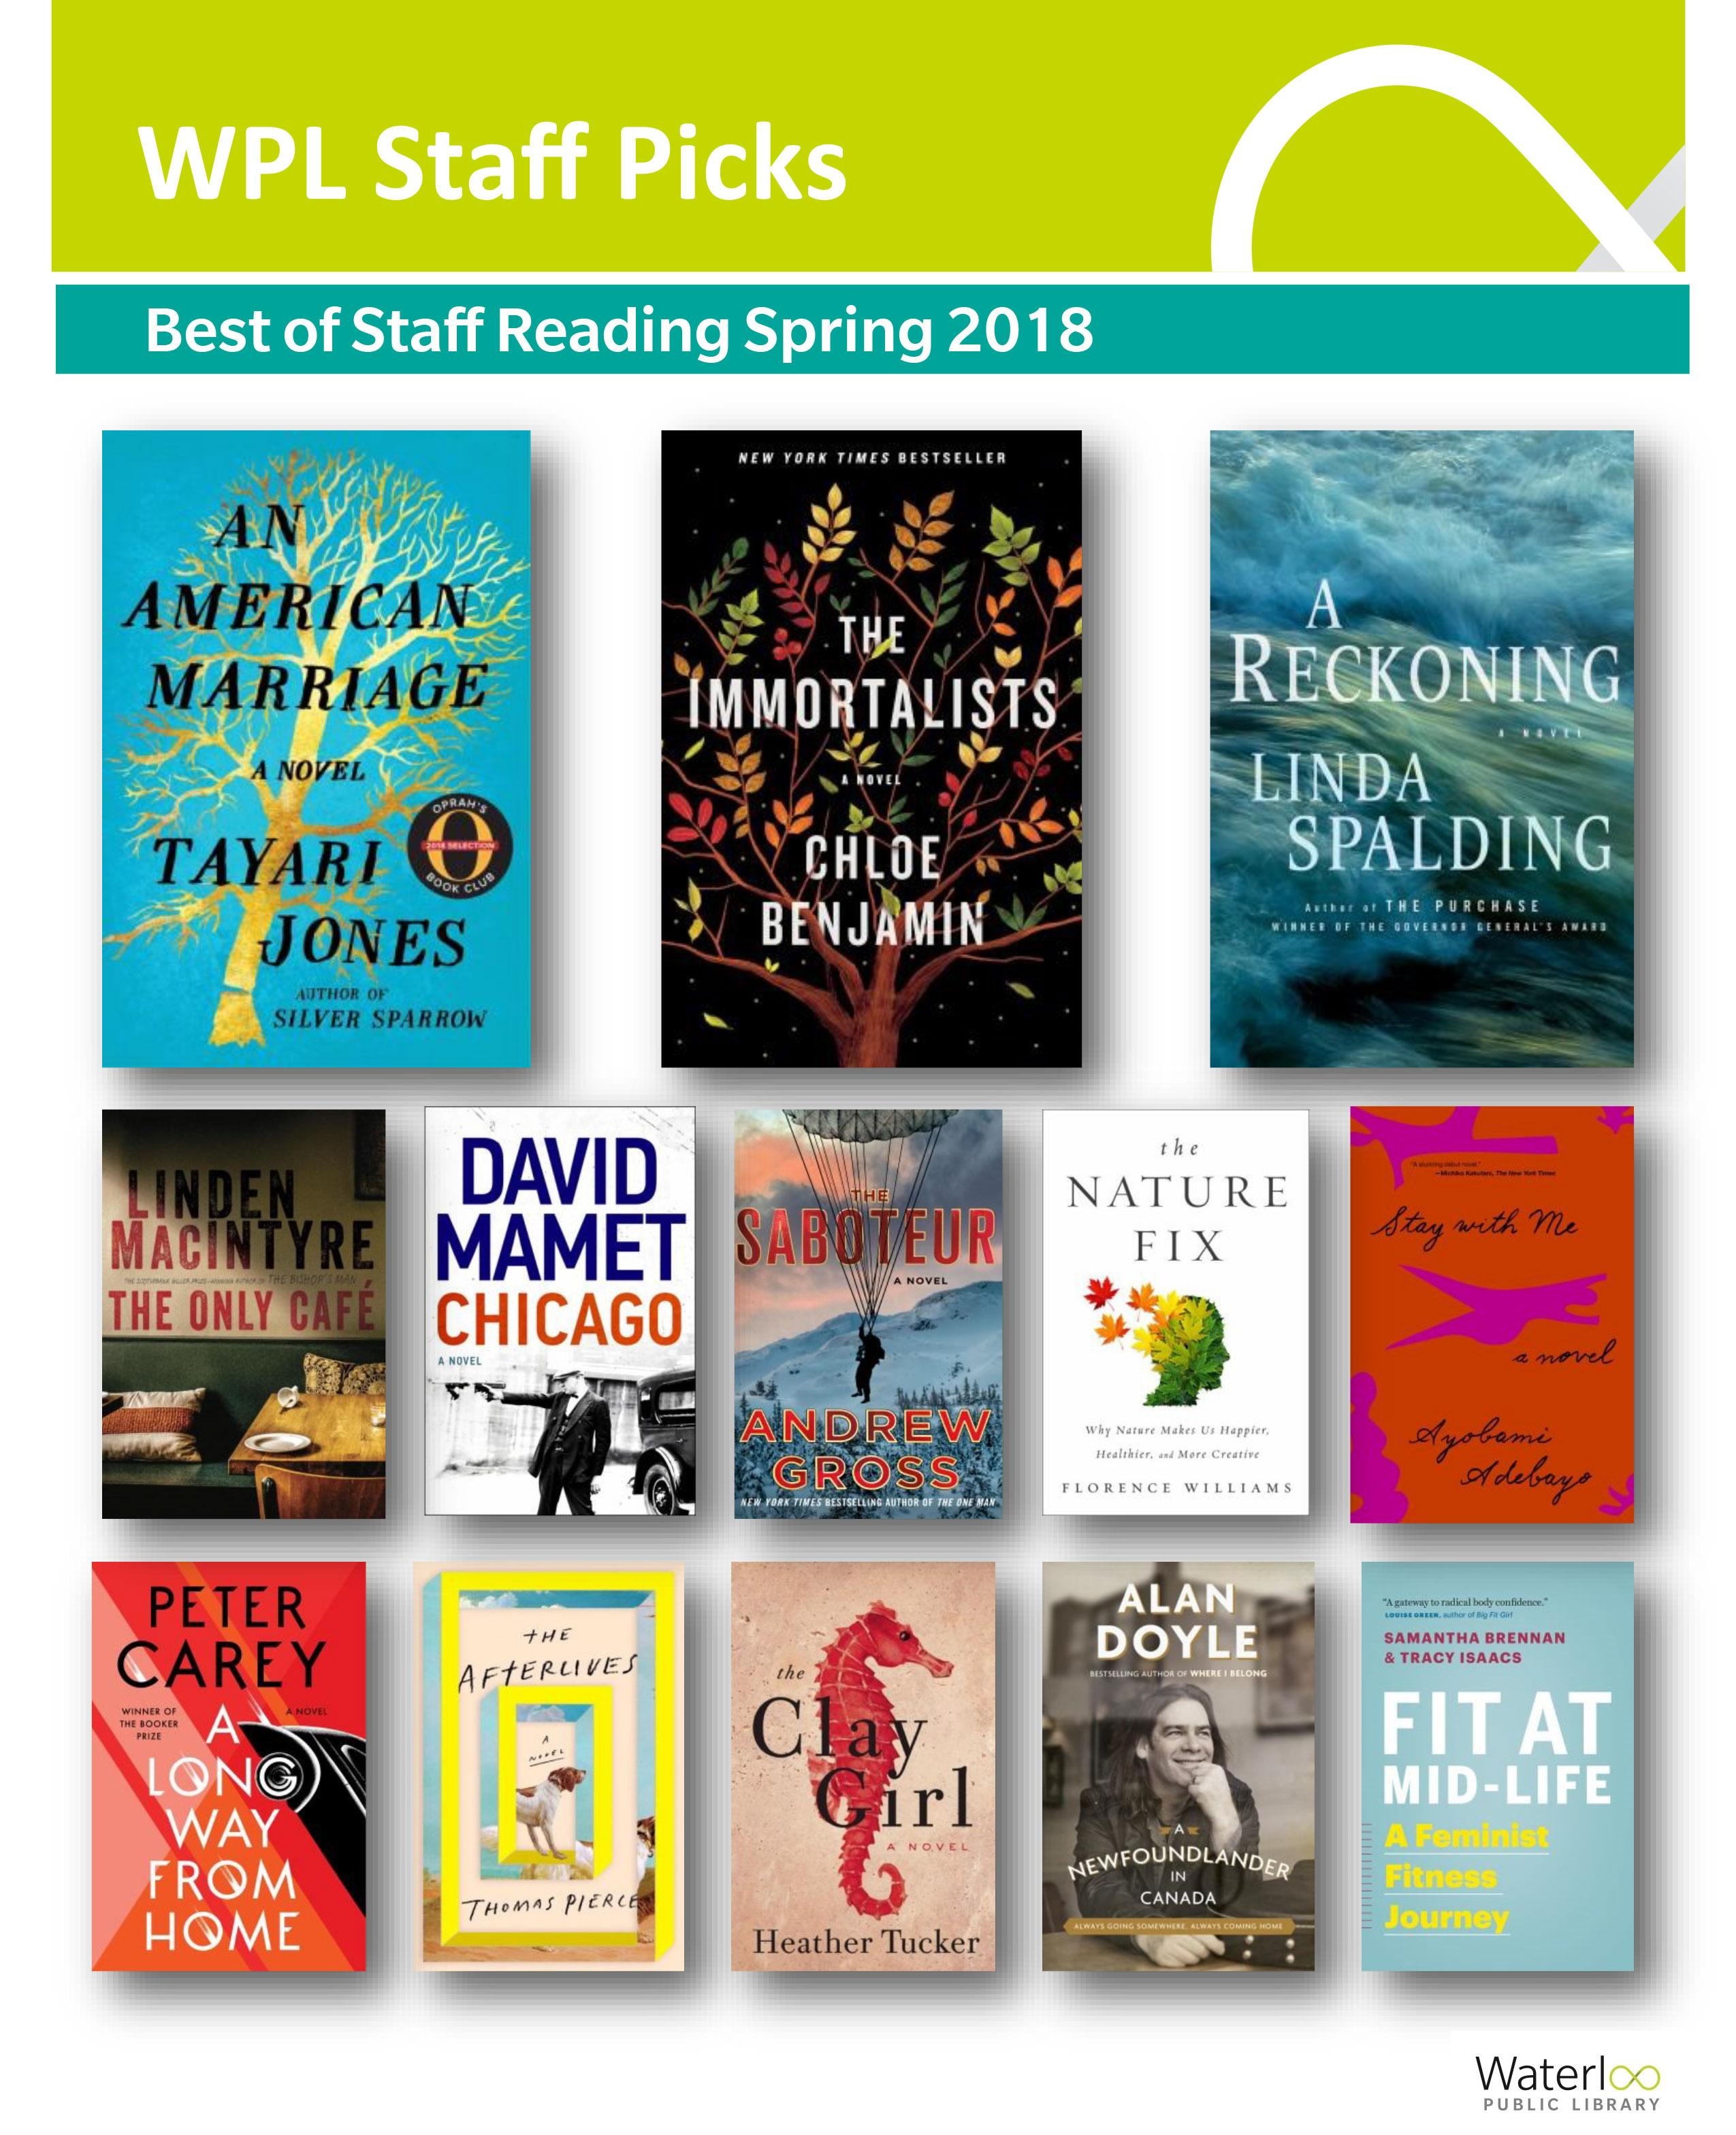 Covers of books recommended by staff